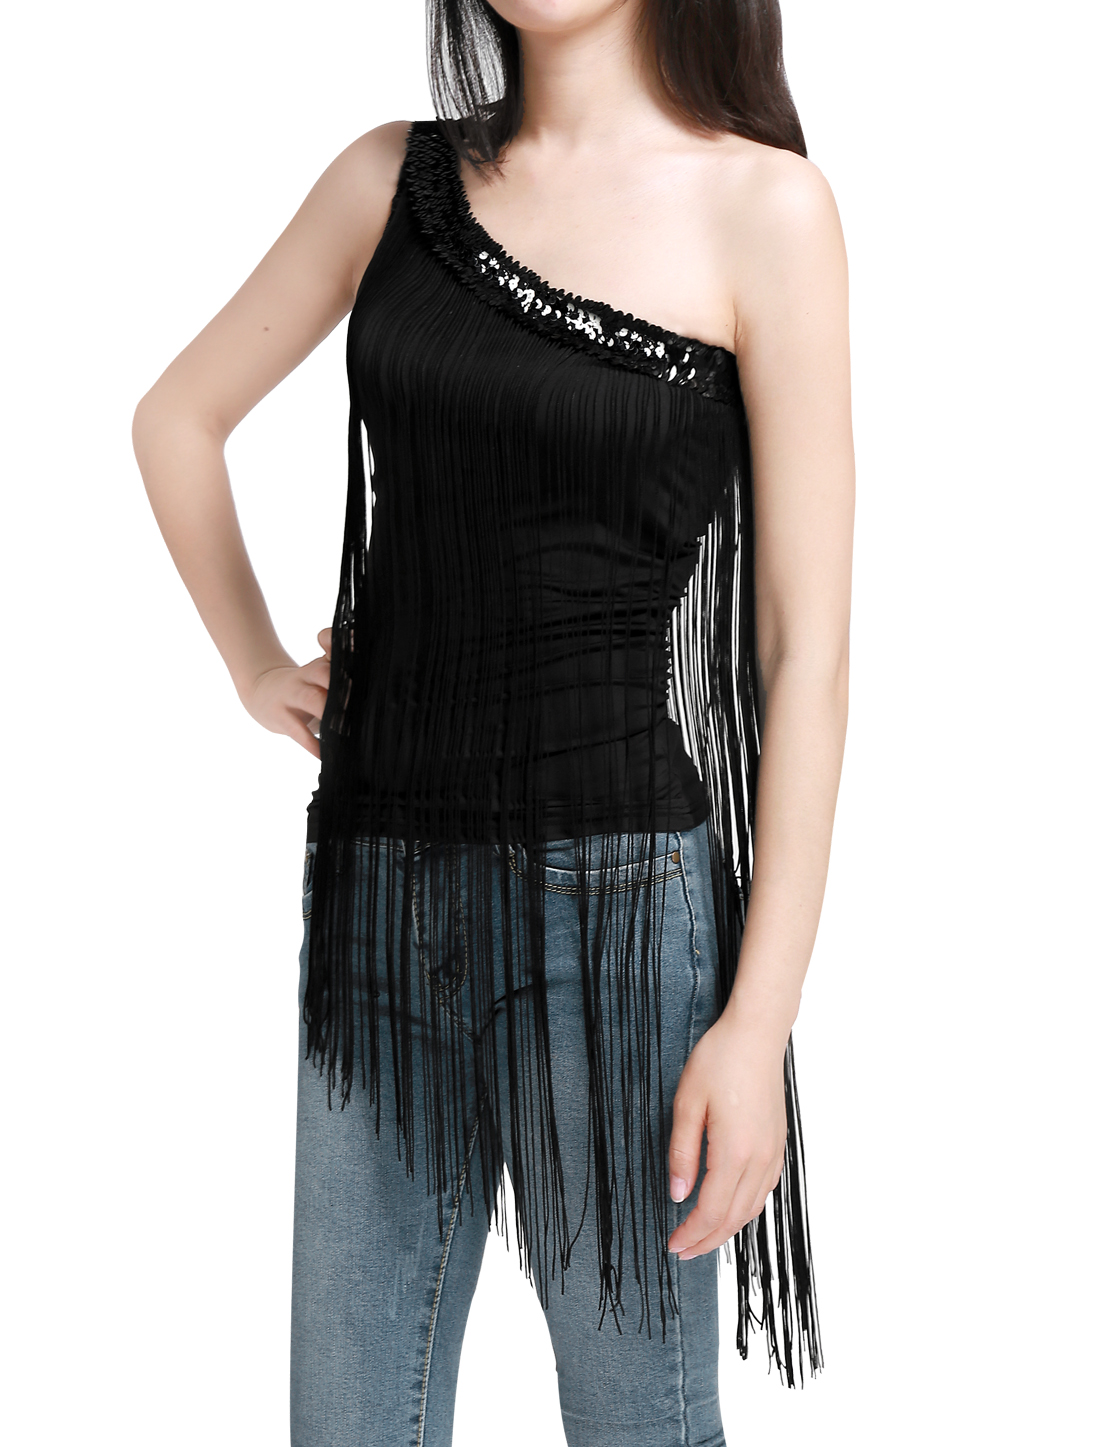 Women Sequins Asymmetric Neckline Sleeveless One Shoulder Tops Black S